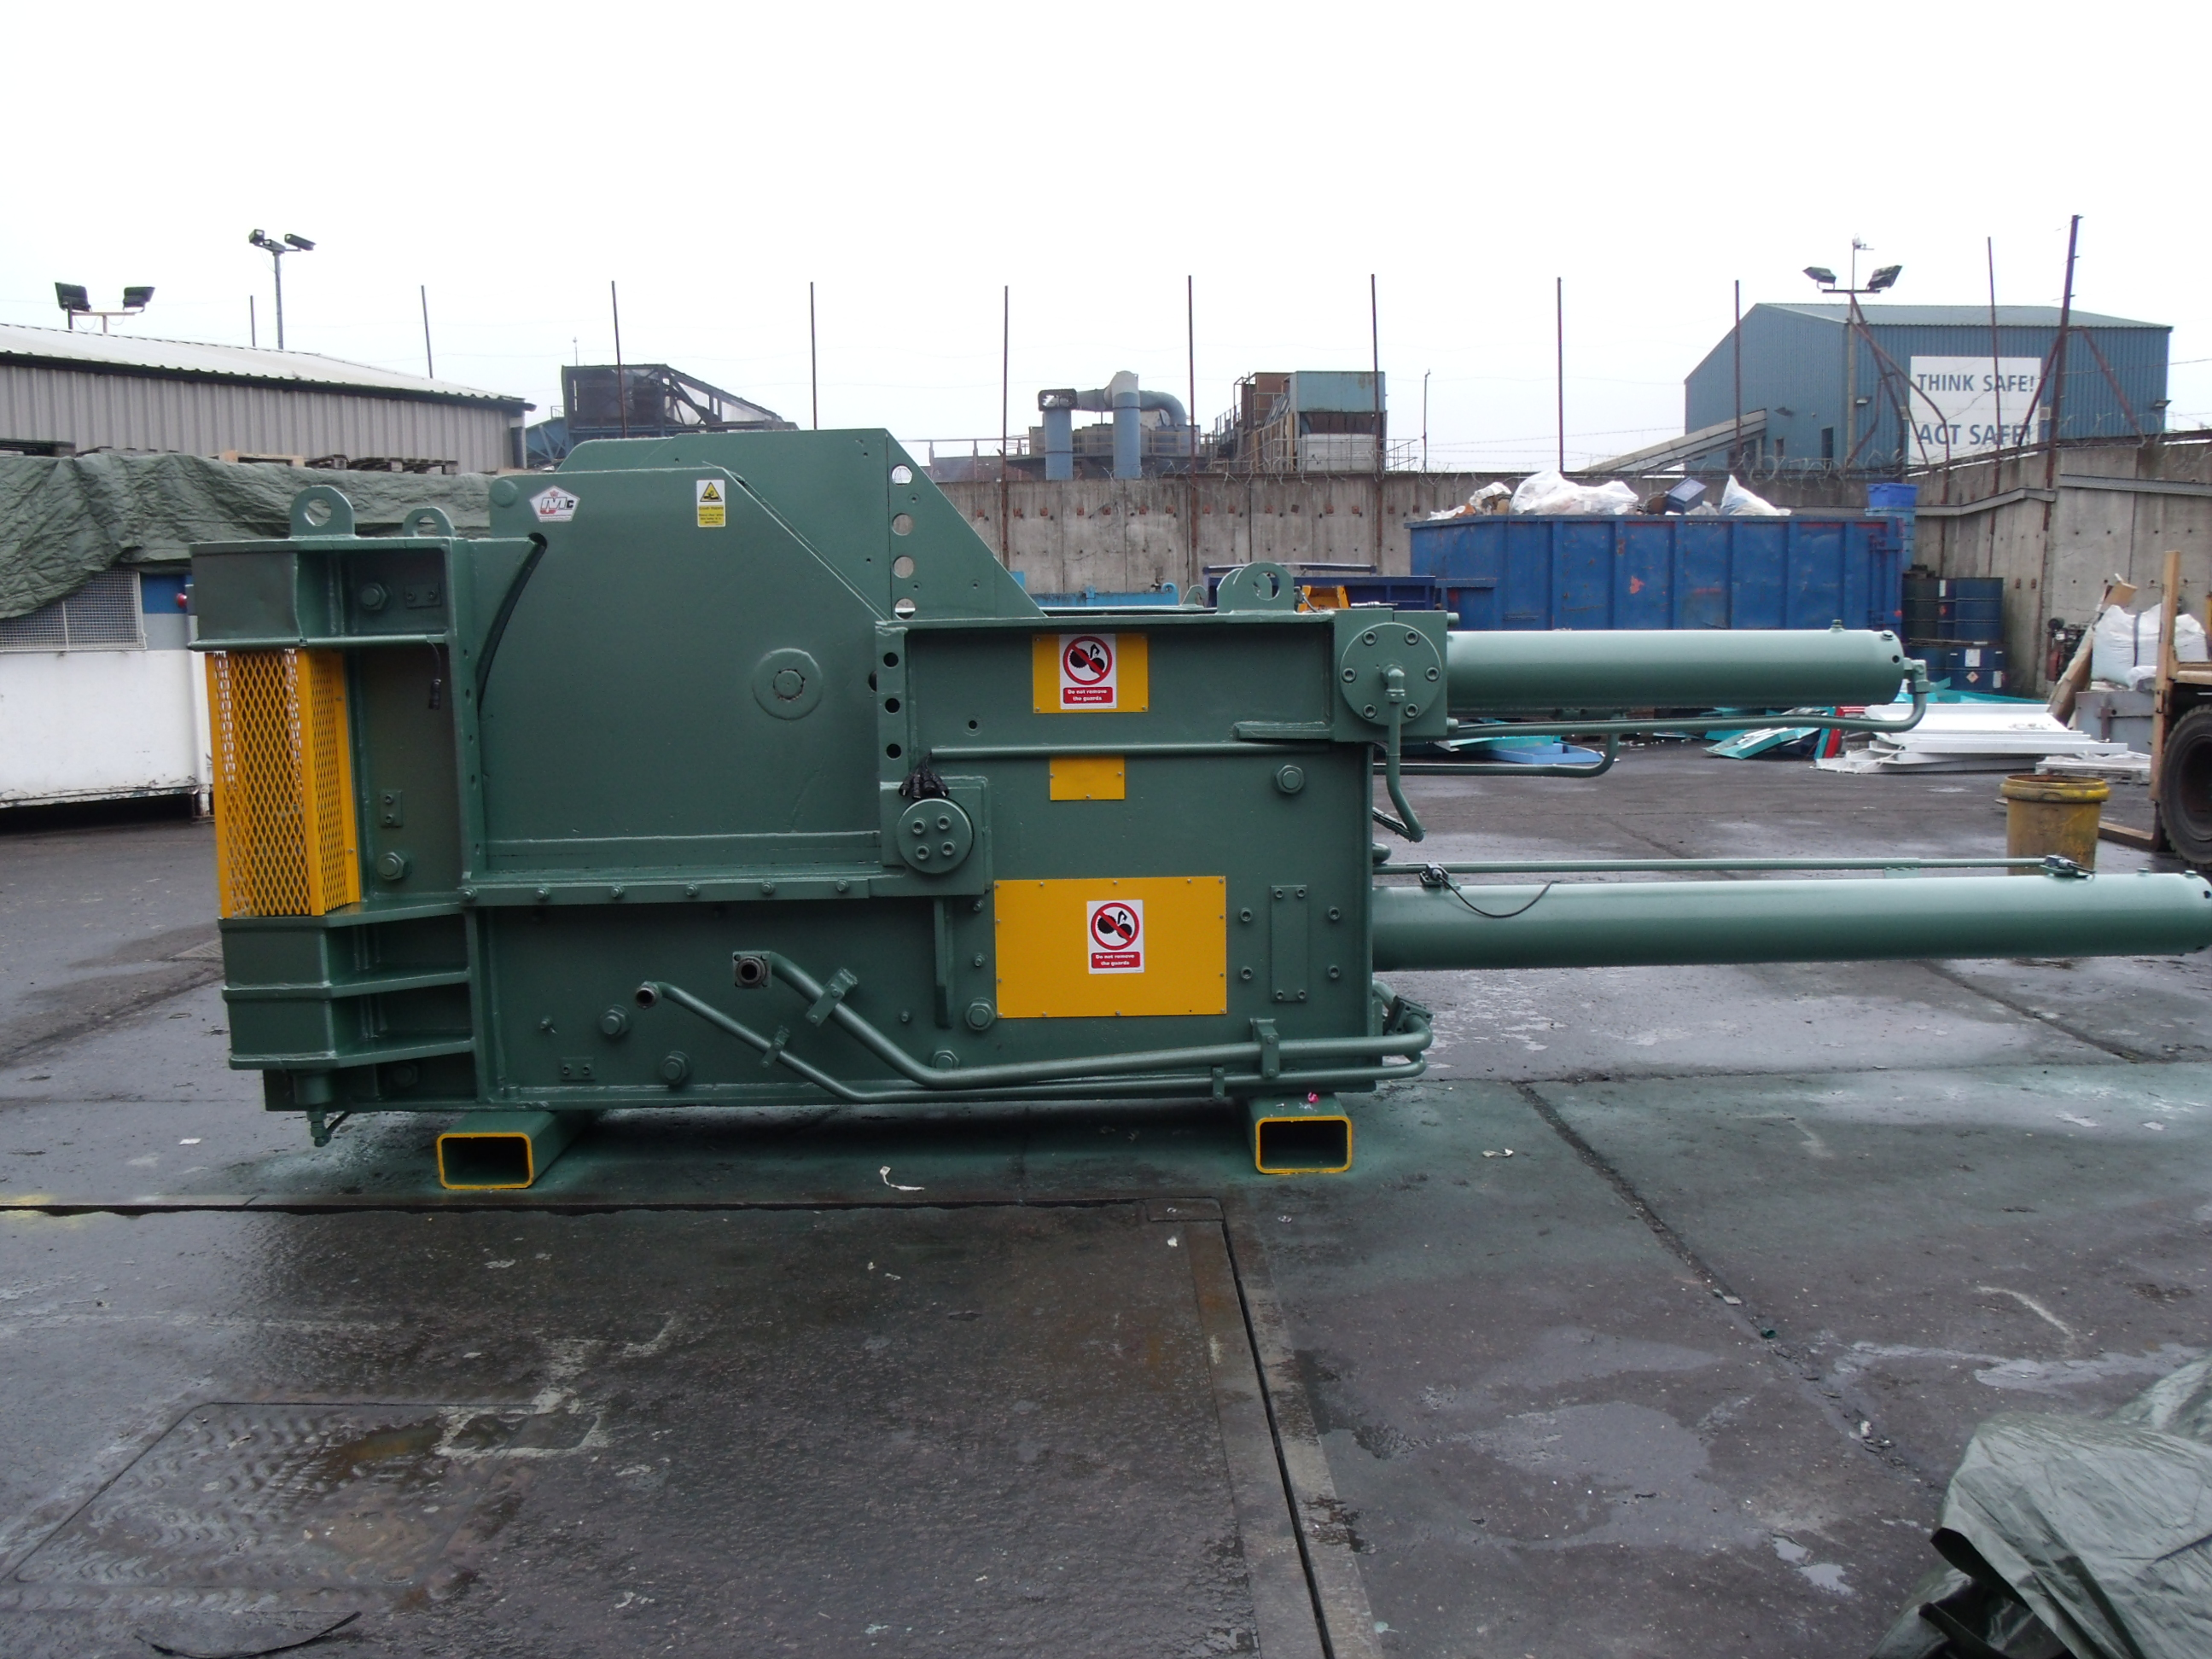 Used Lindemann Sodre 9 metal baler reconditioned by McIntyre